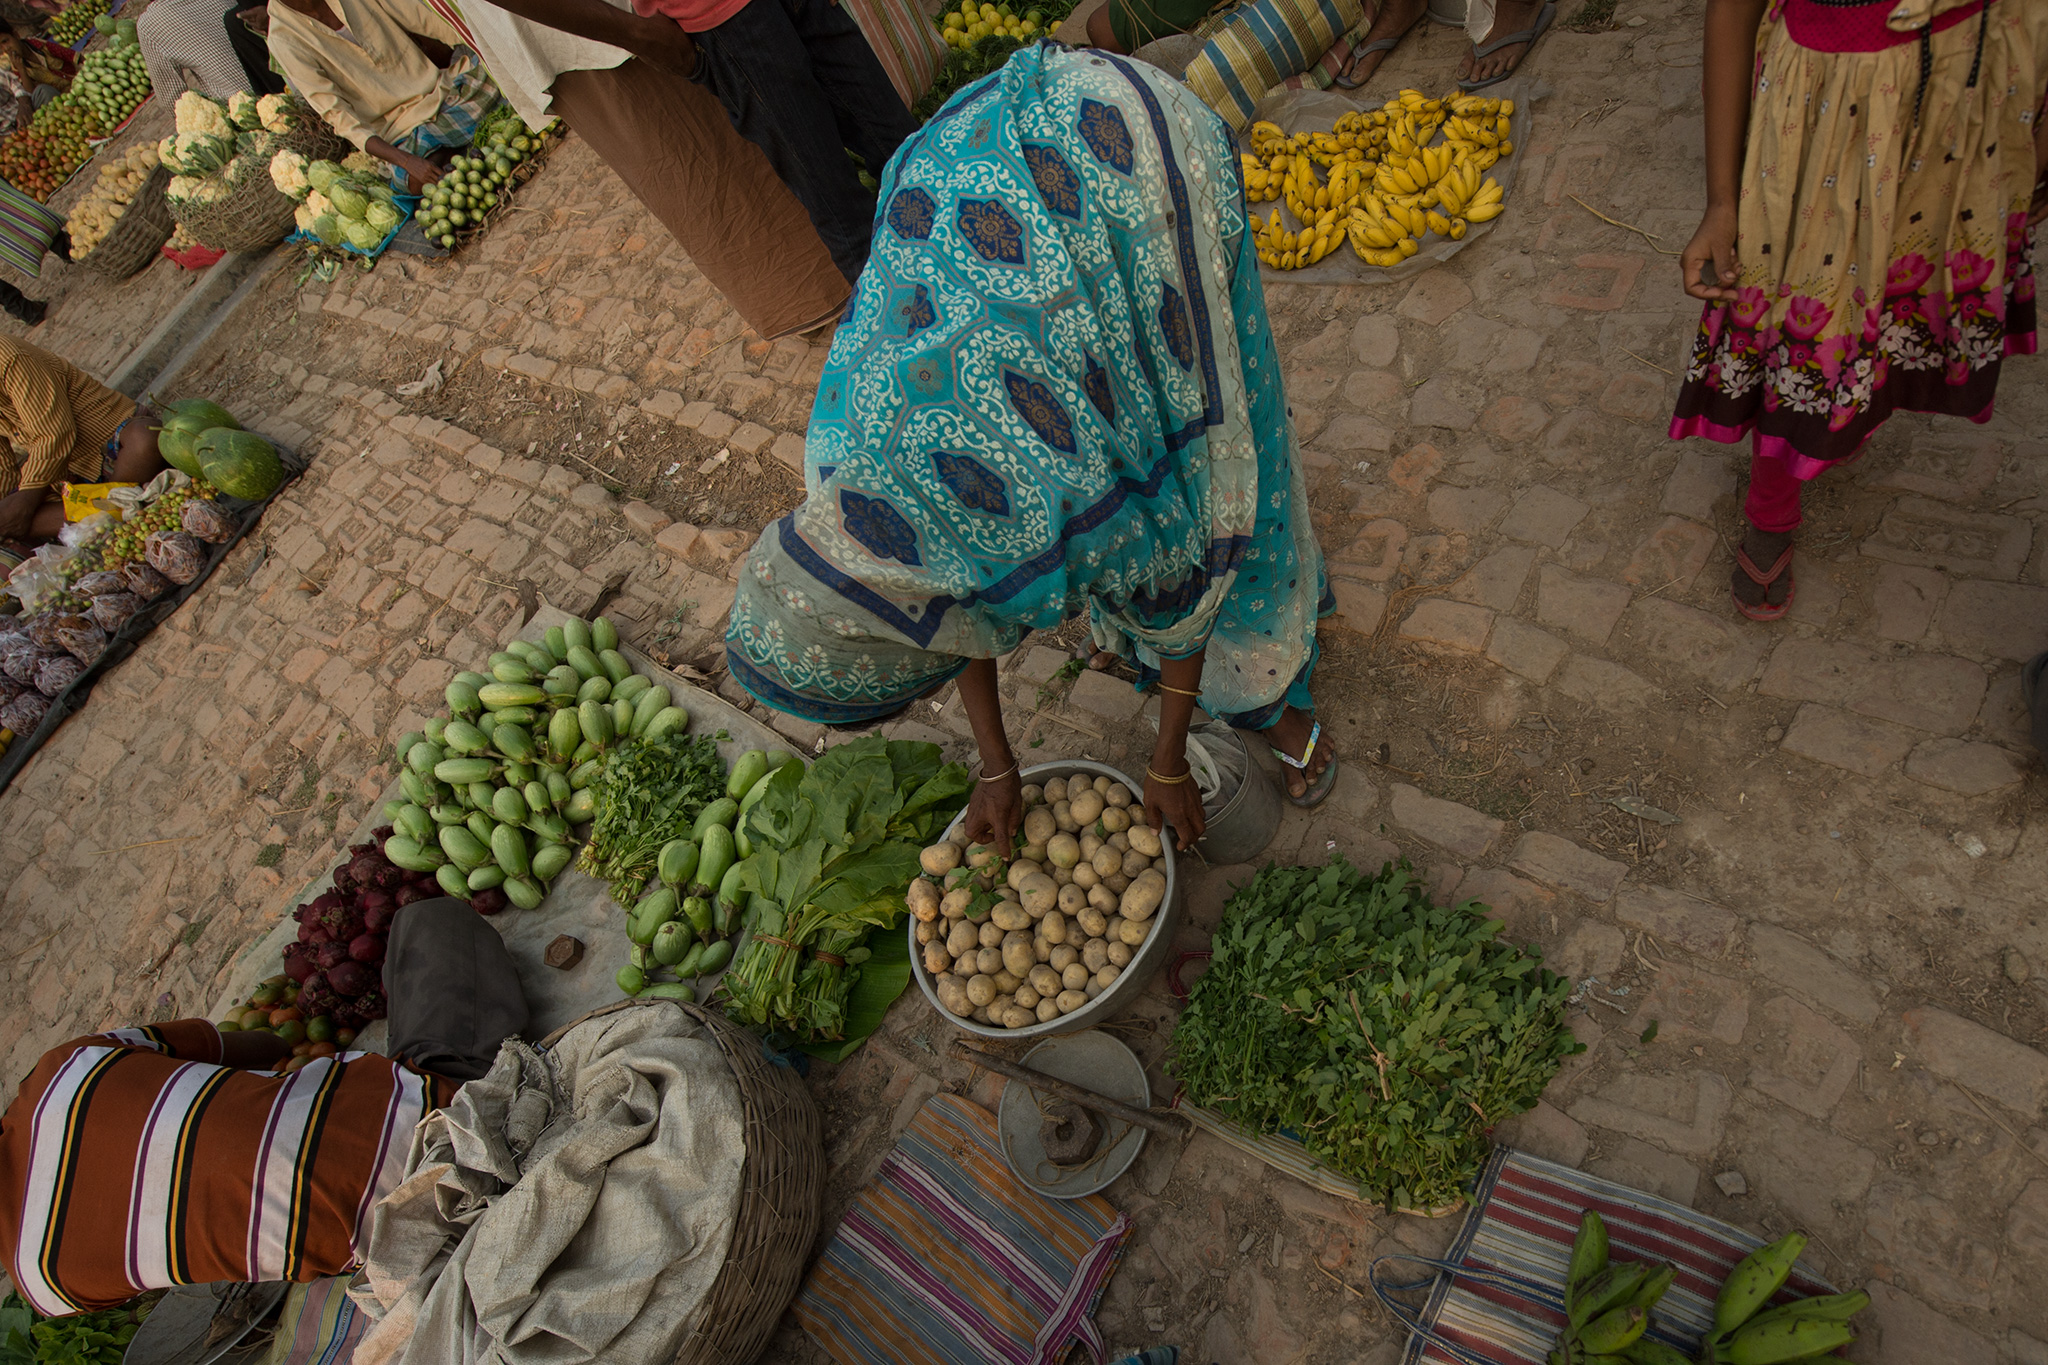 Setting up vegetable shop in the weekly market